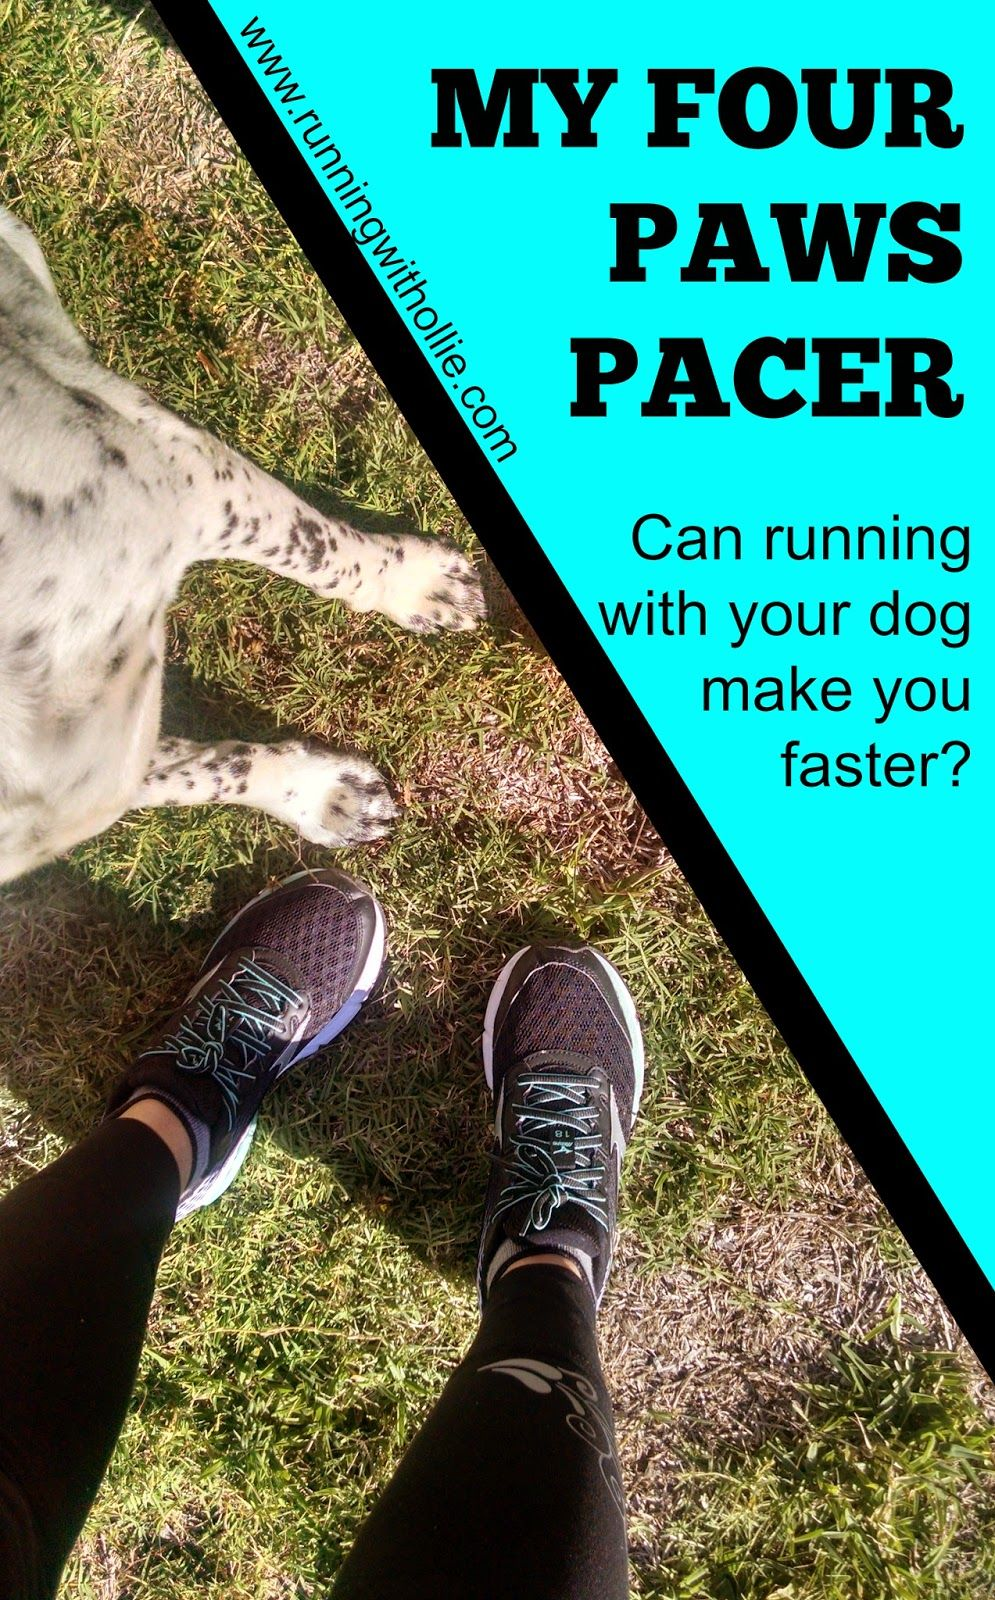 My four paws pacer can running with your dog make you